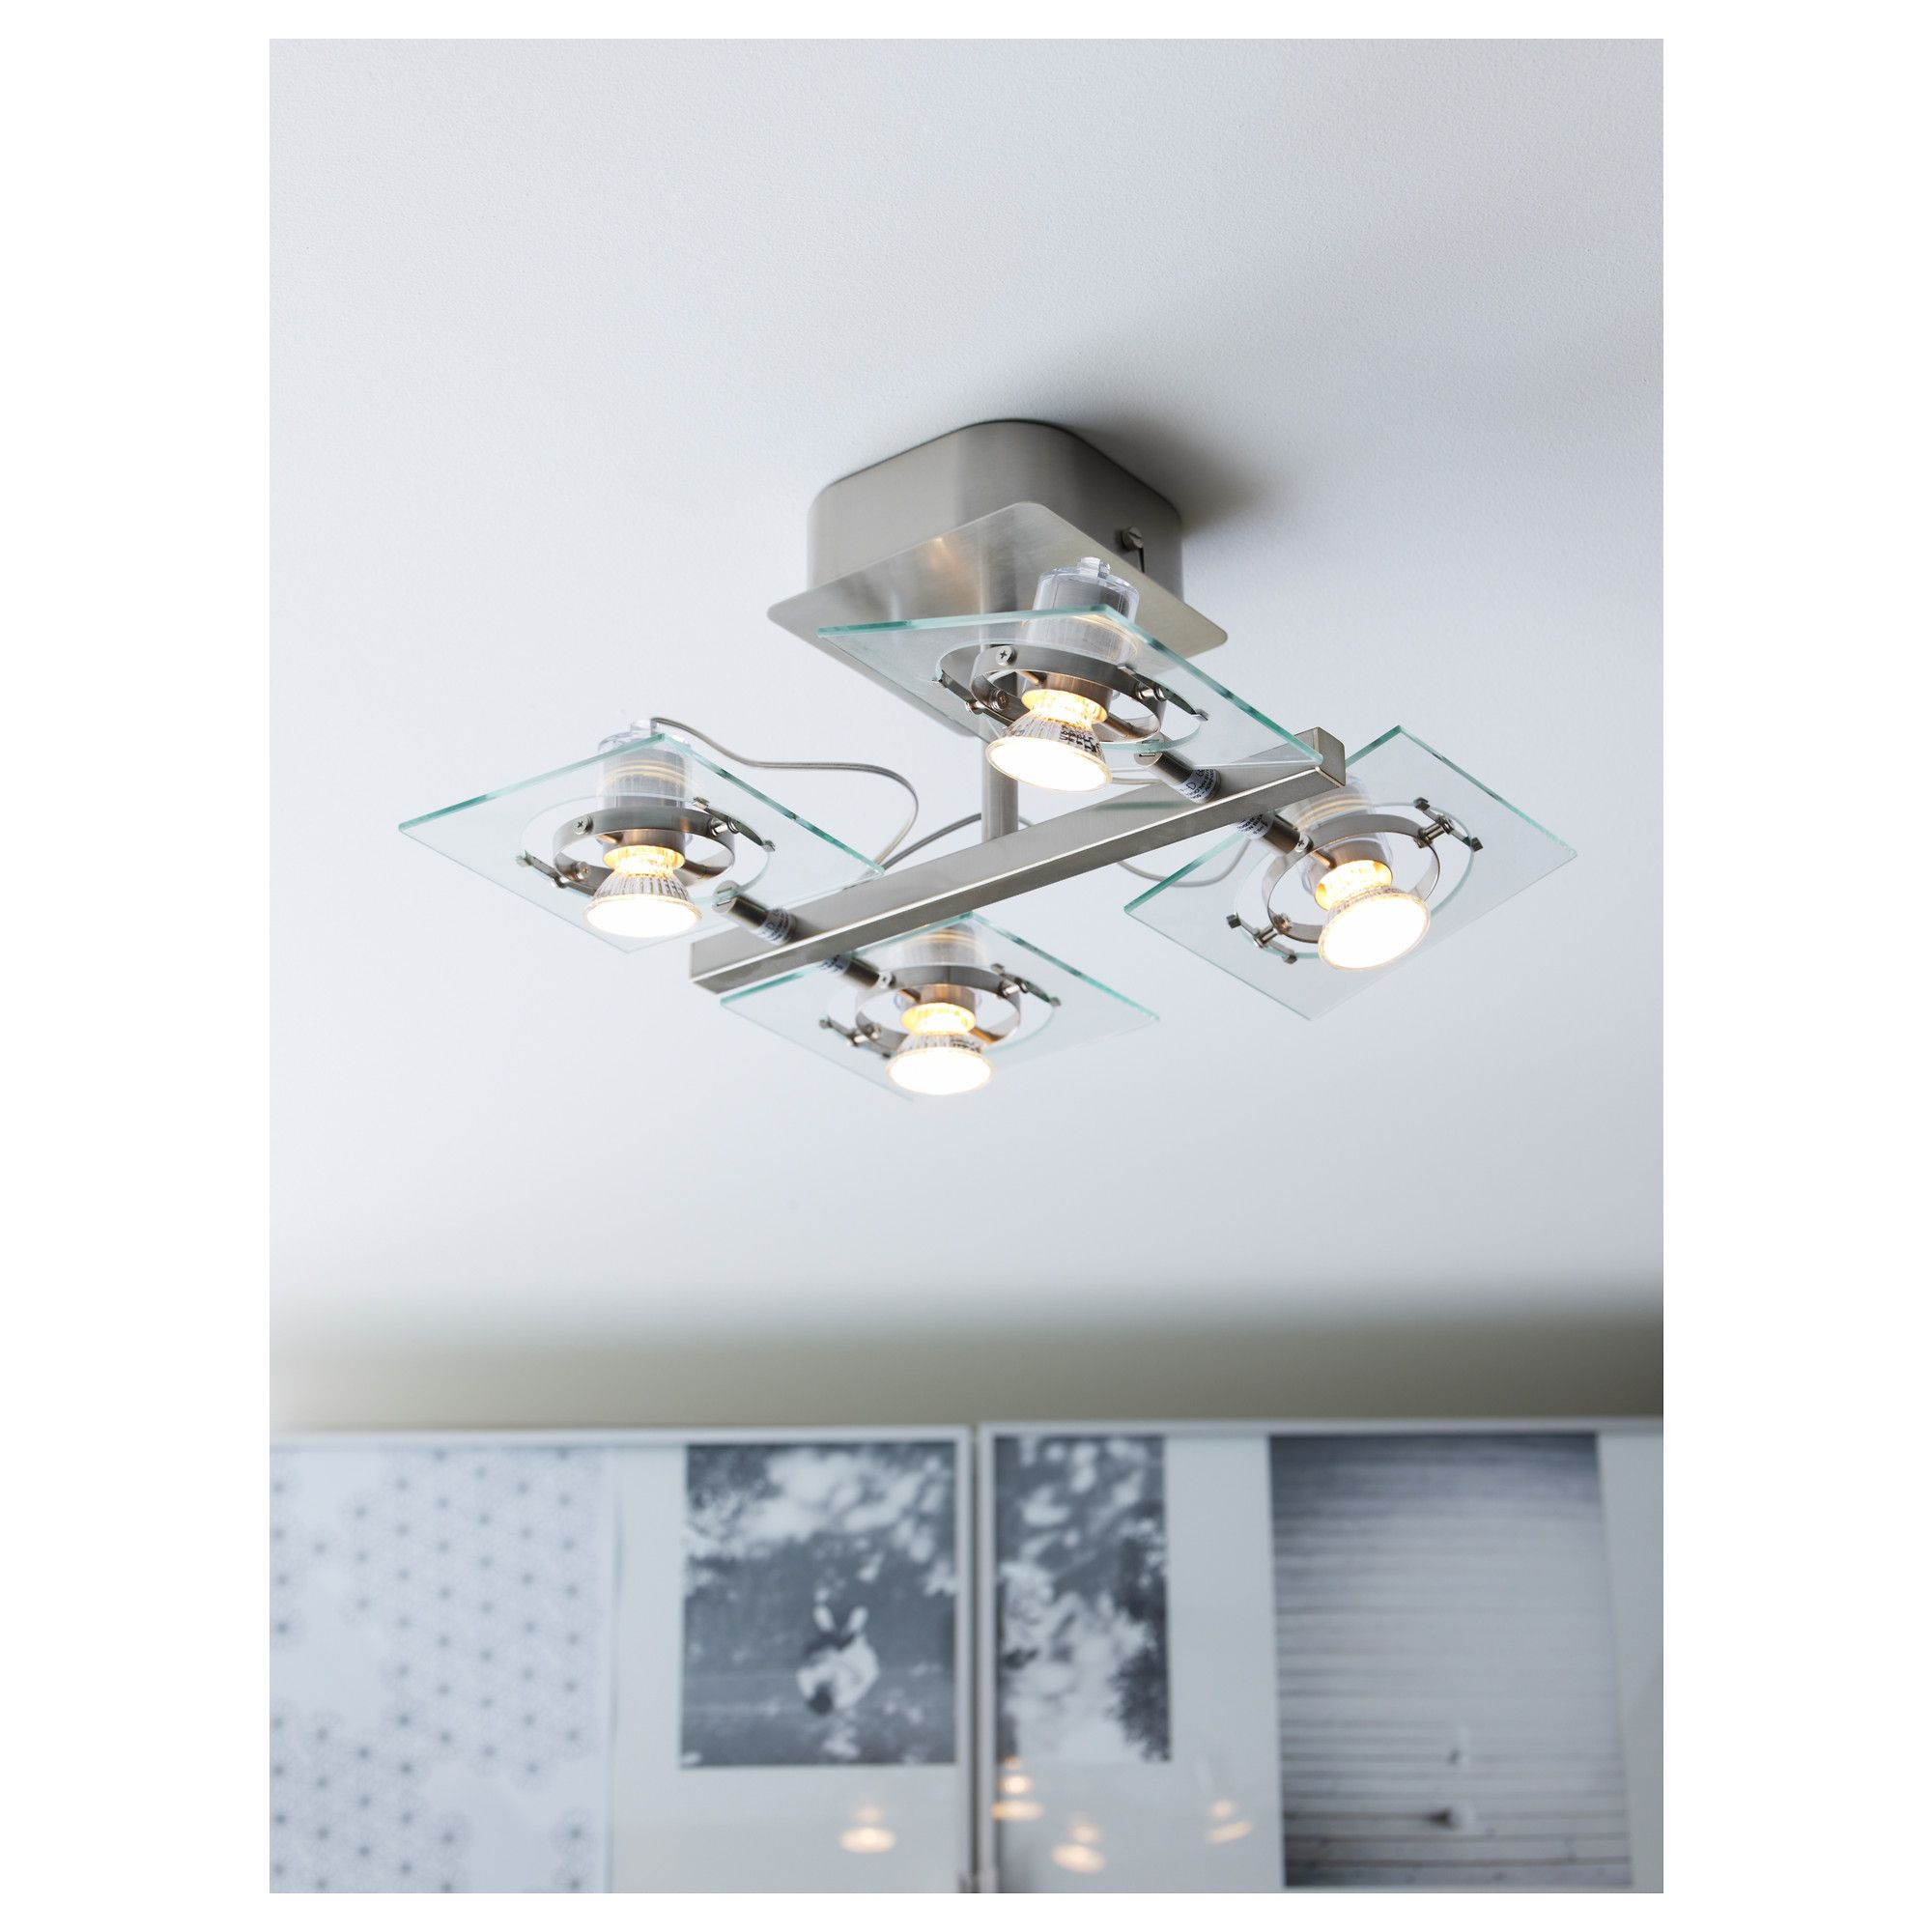 Shop For Furniture Lighting Home Accessories More